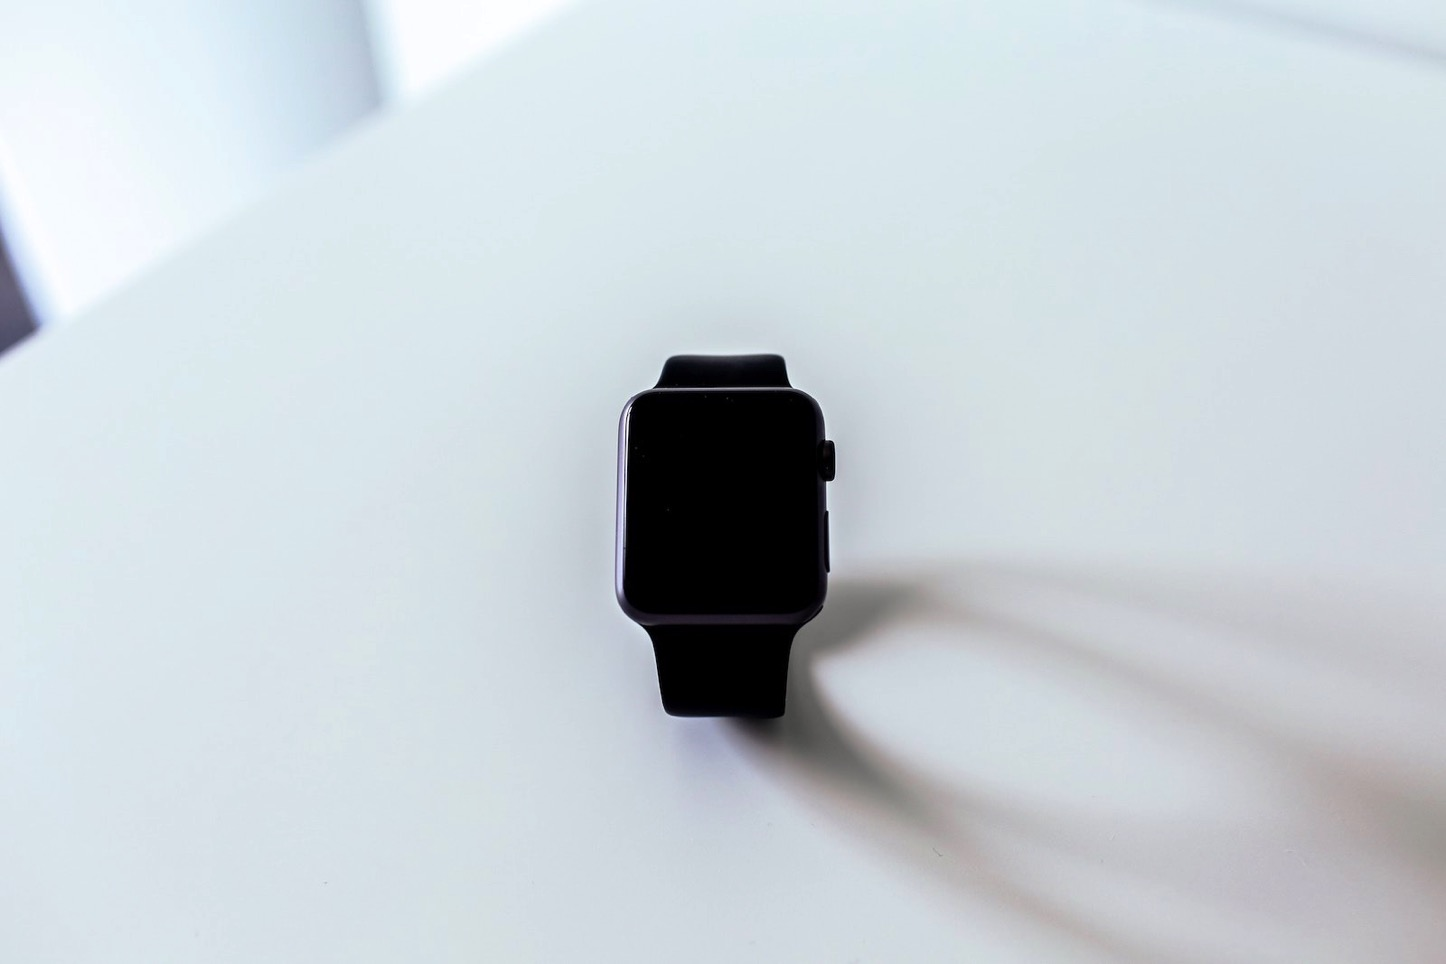 Tom pumford 304847 apple watch cellular rumor